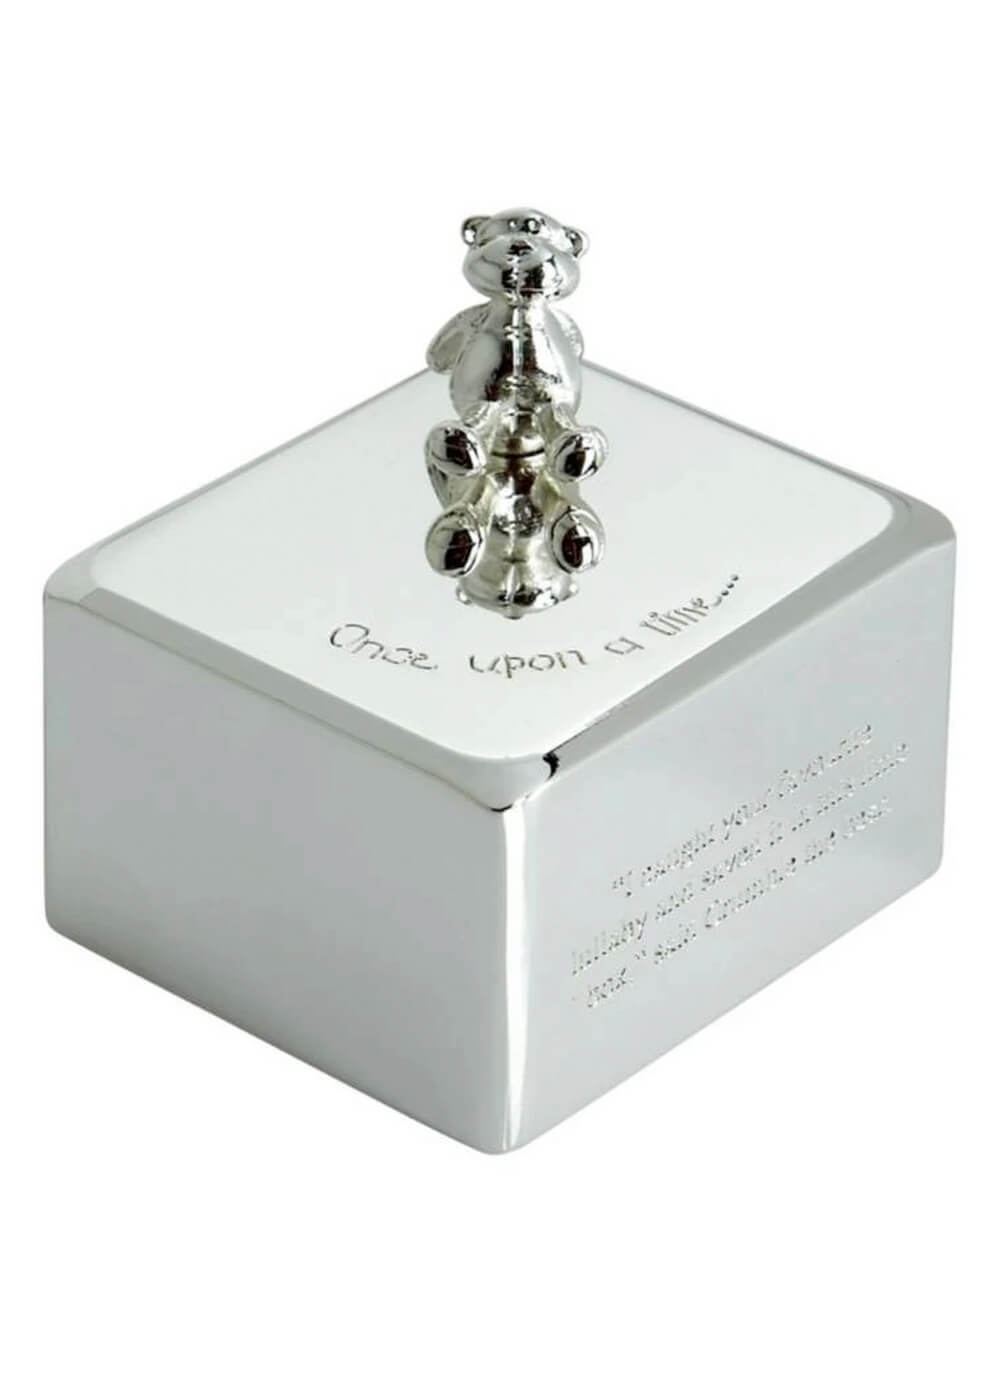 Mamas & Papas - Once Upon a Time Silver Plated Music Box